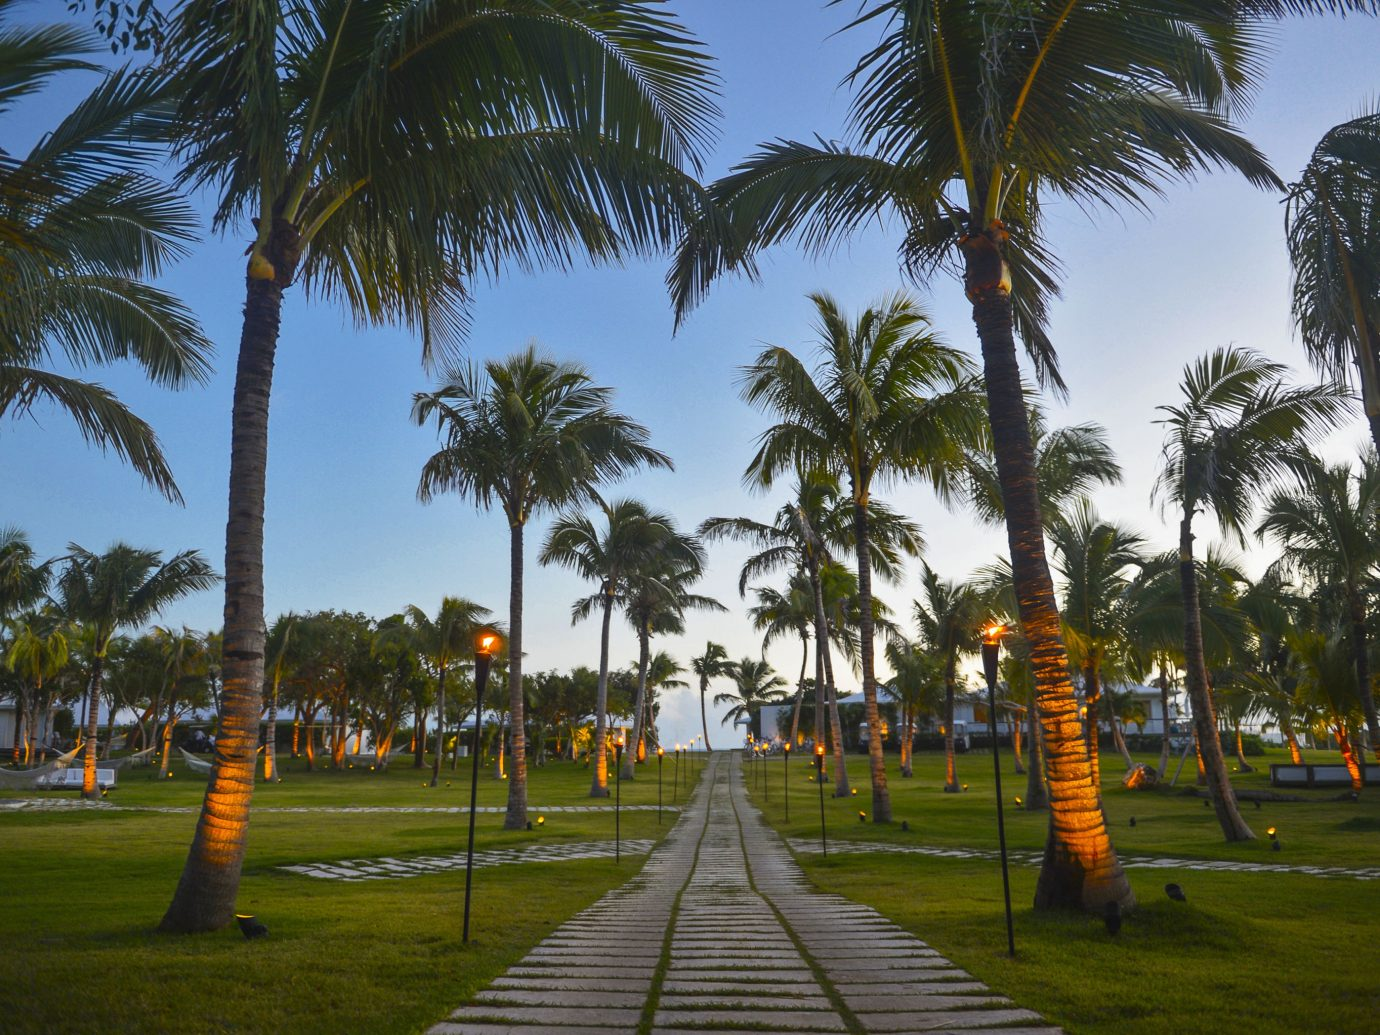 Hotels Romance tree palm grass sky outdoor plant palm family vacation arecales Beach woody plant walkway lined Resort flower